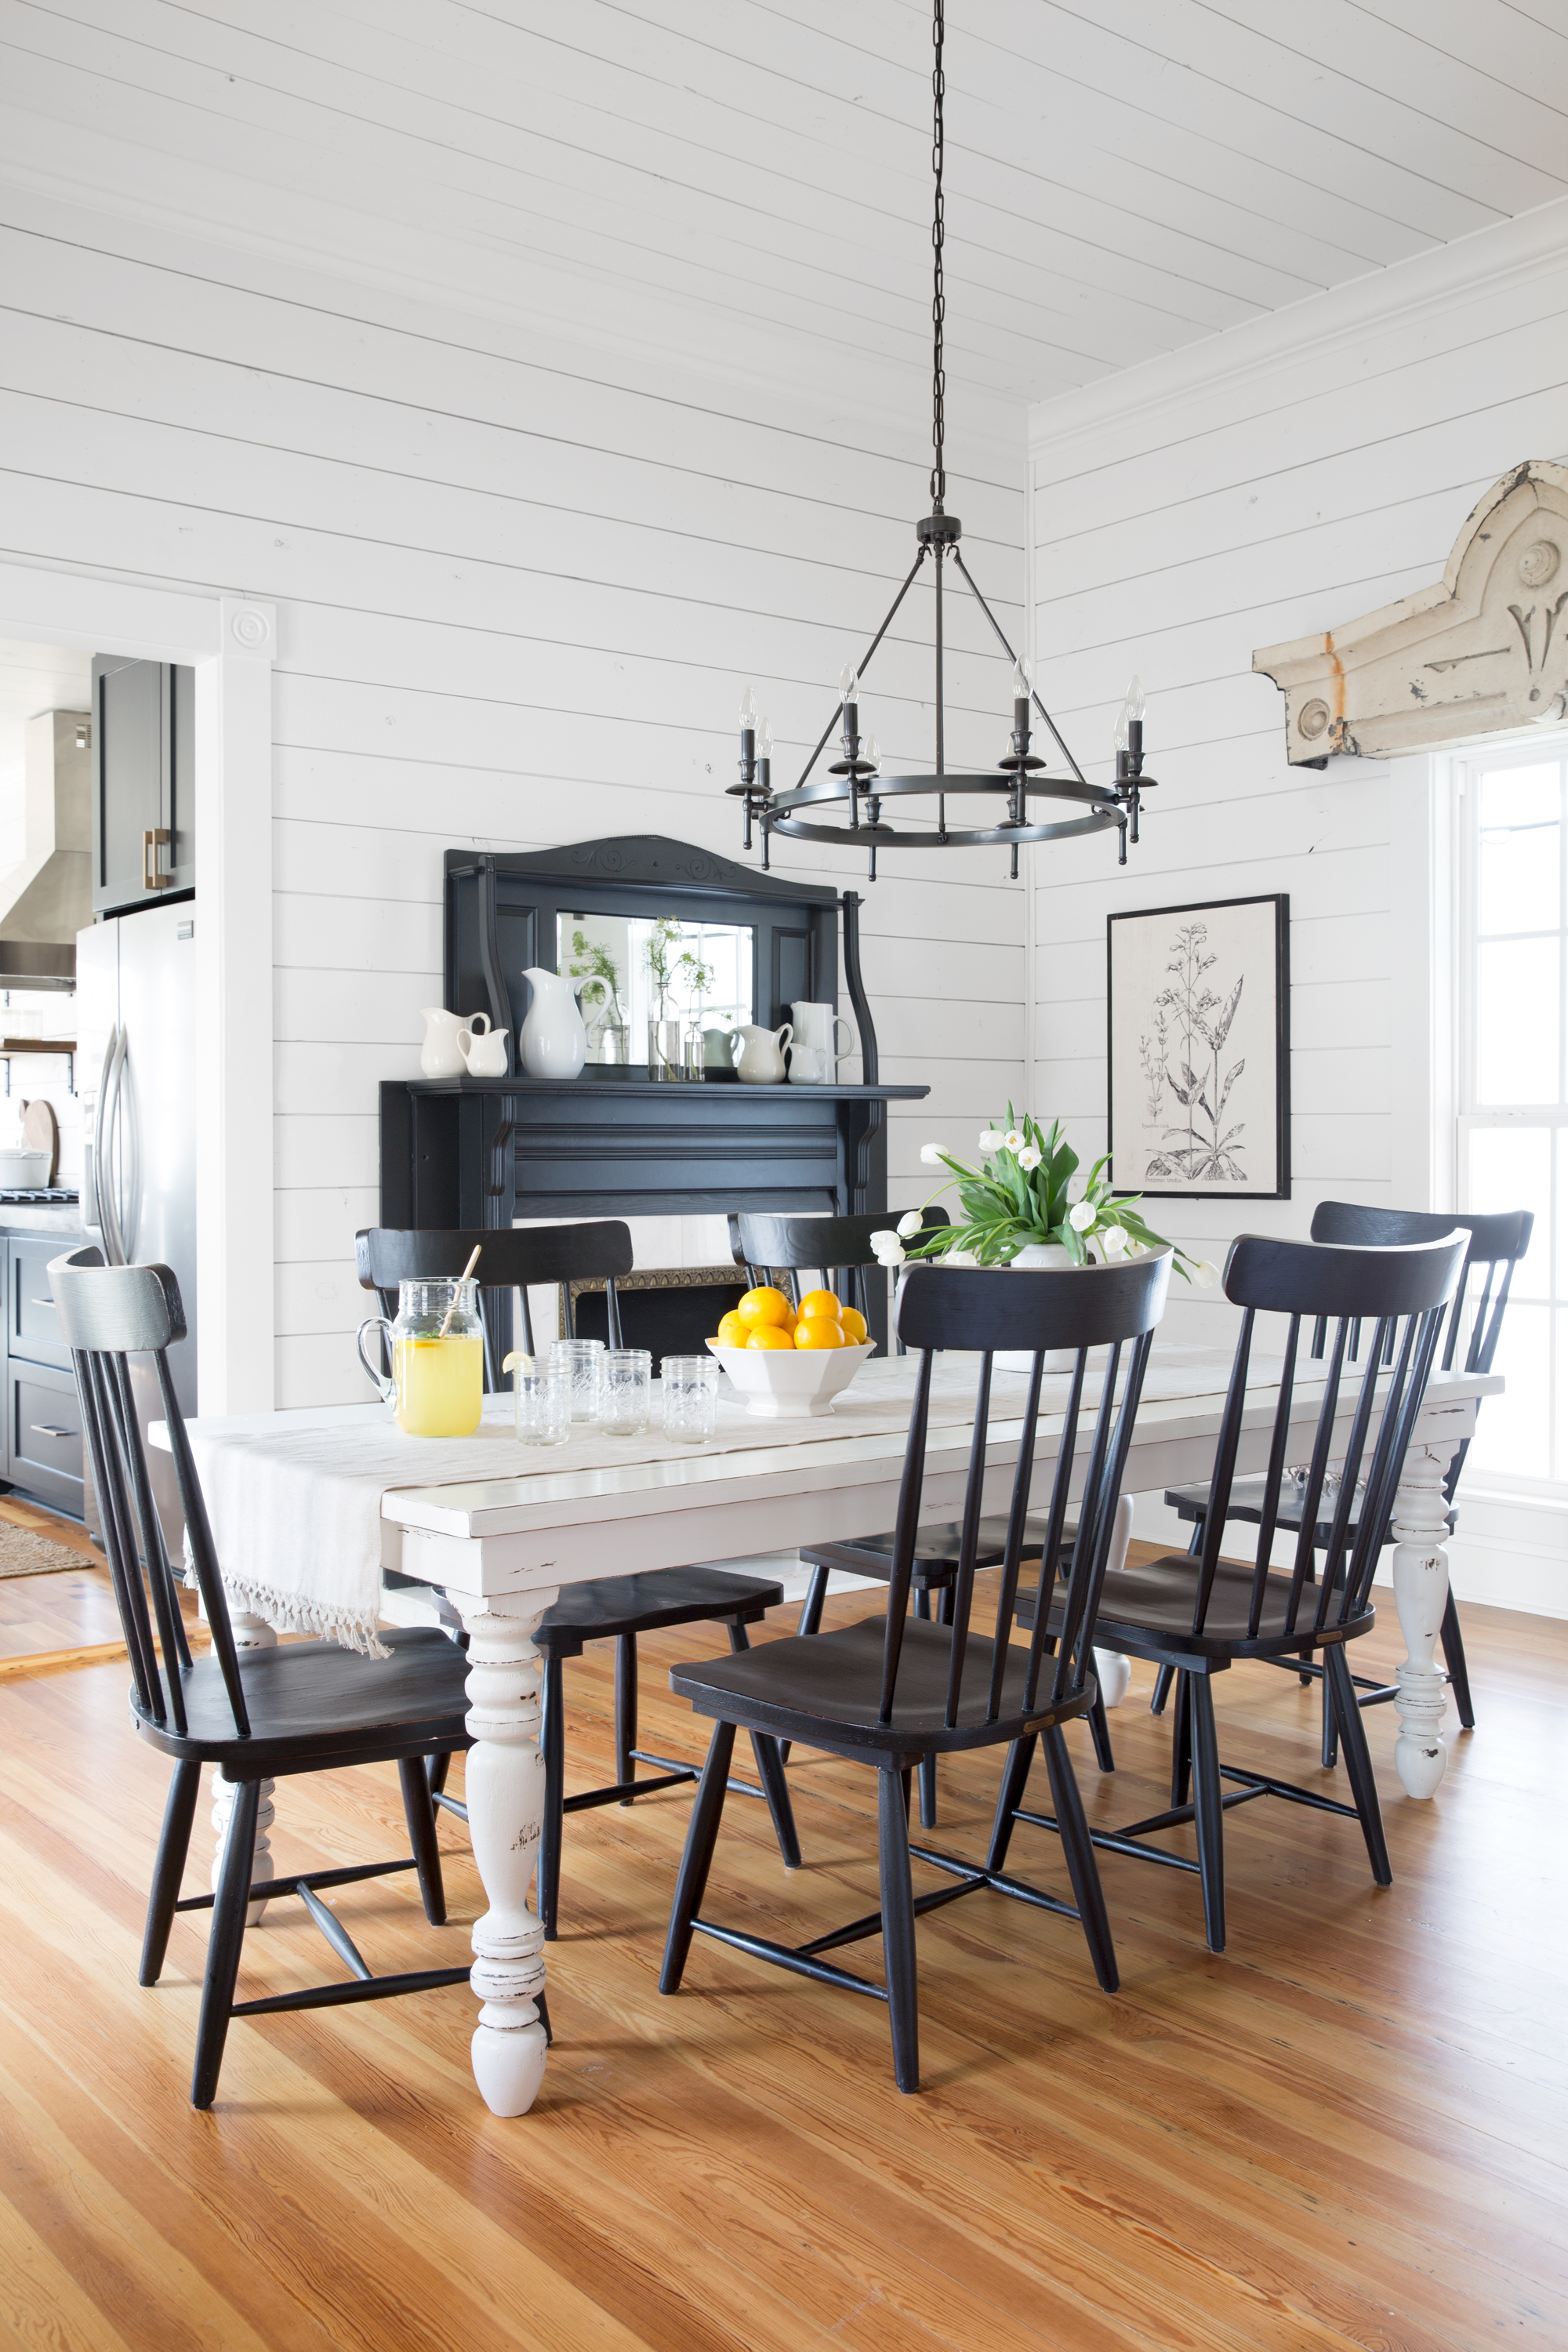 Chip and Joanna Gaines Magnolia House B&B Tour - Fixer ...